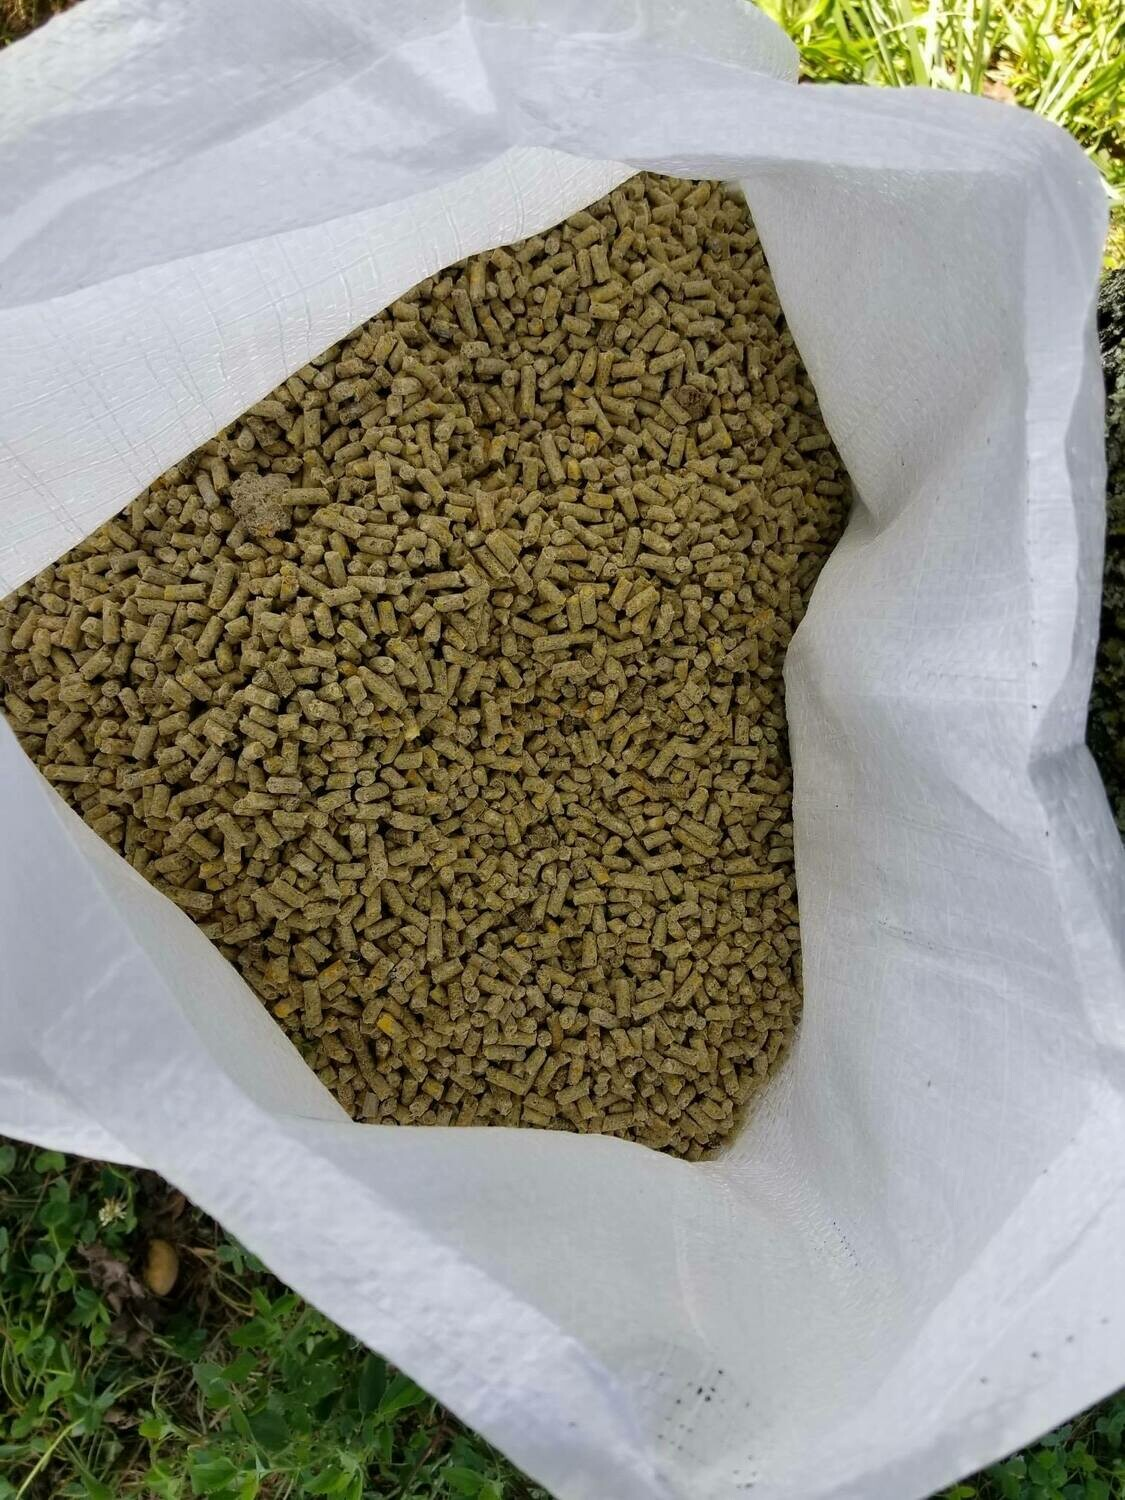 Flowering Pear Poultry Layer Feed 17% protein. Summer Blend Pellets